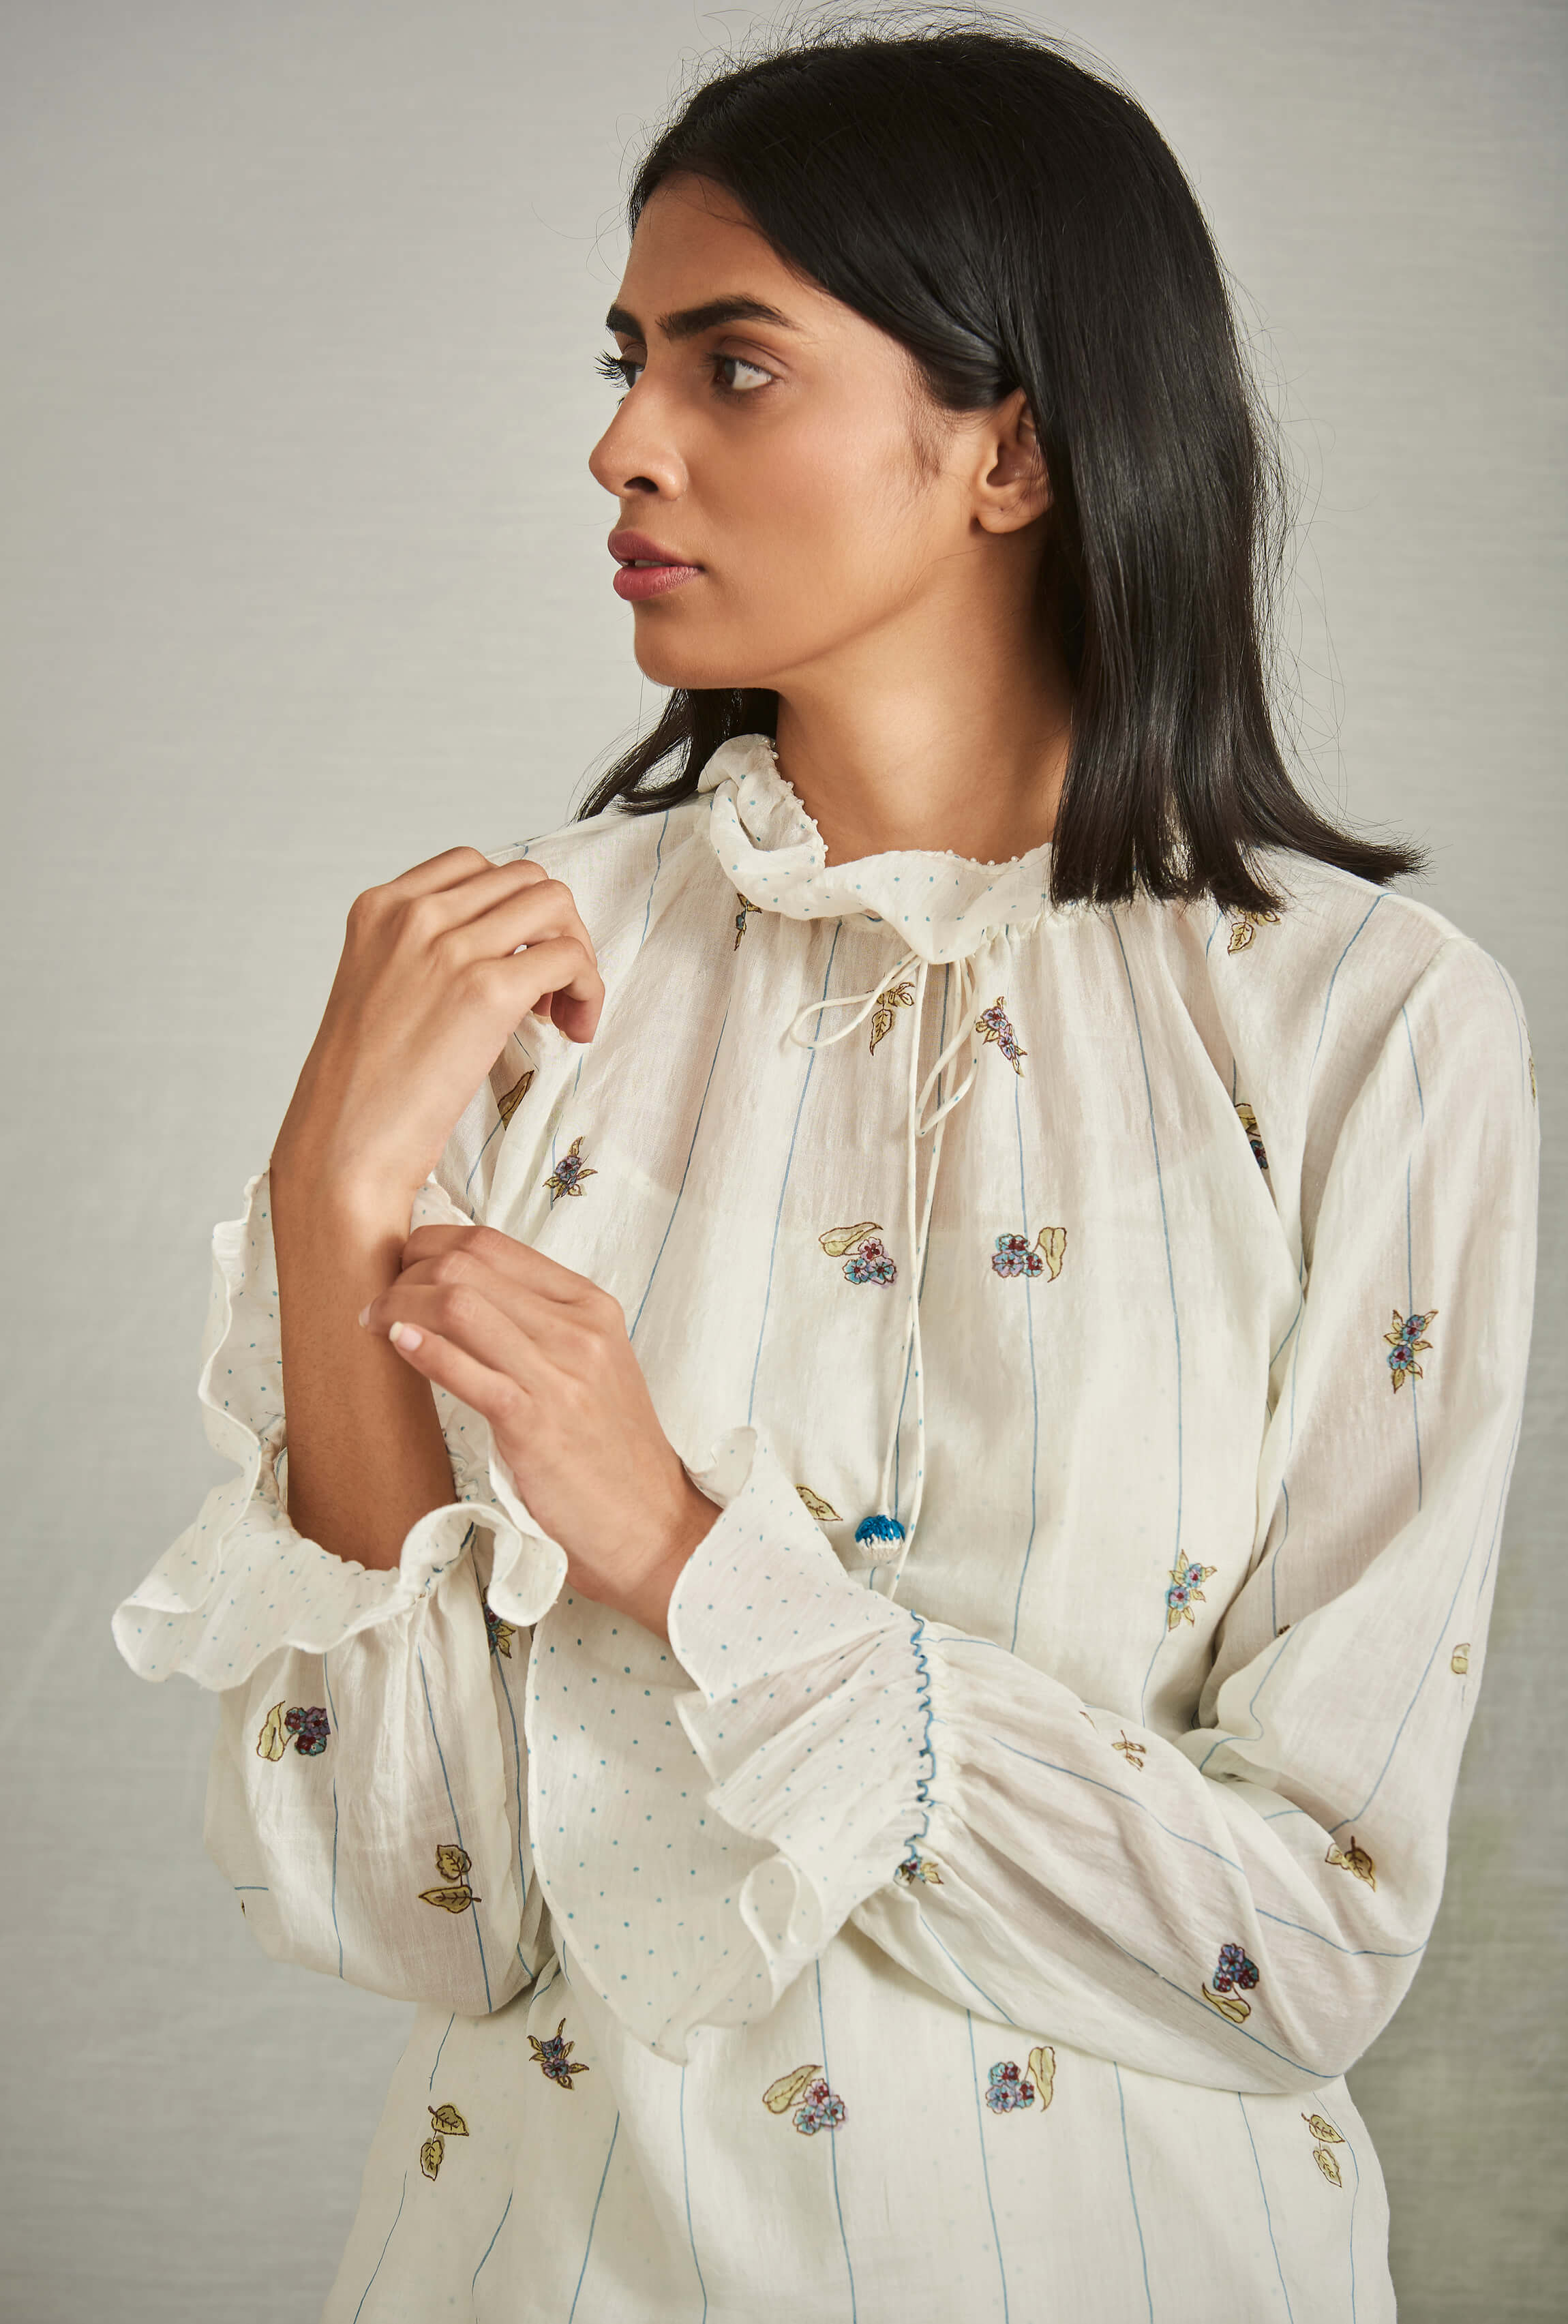 Bellflower Blouse - BunaStudio